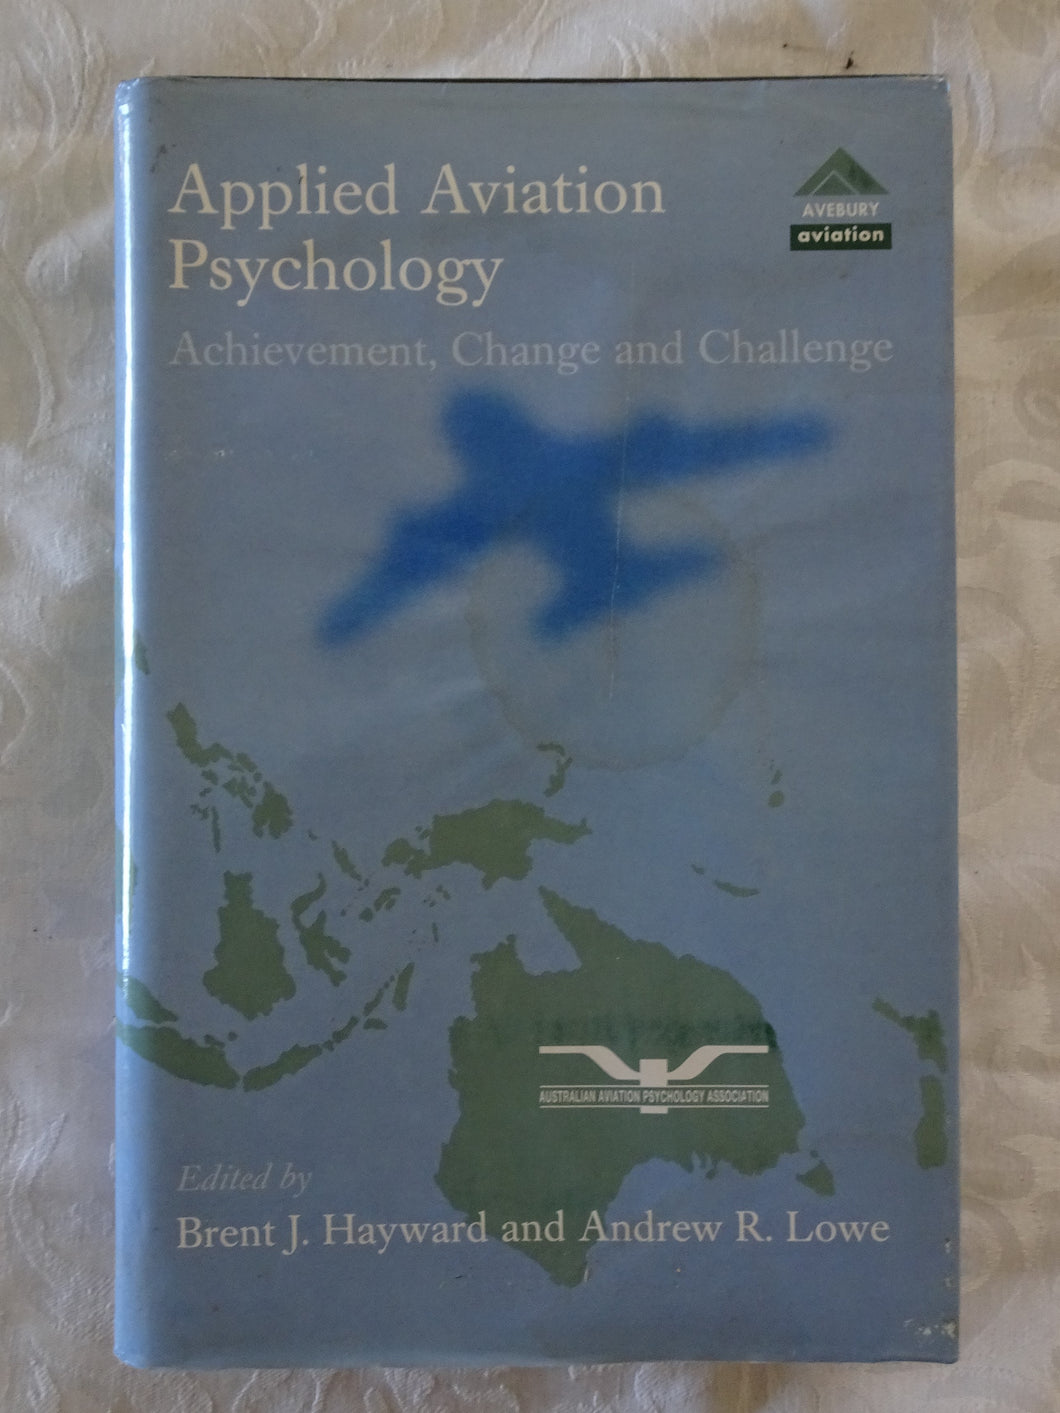 Applied Aviation Psychology by Brent J. Hayward and Andrew R. Lowe